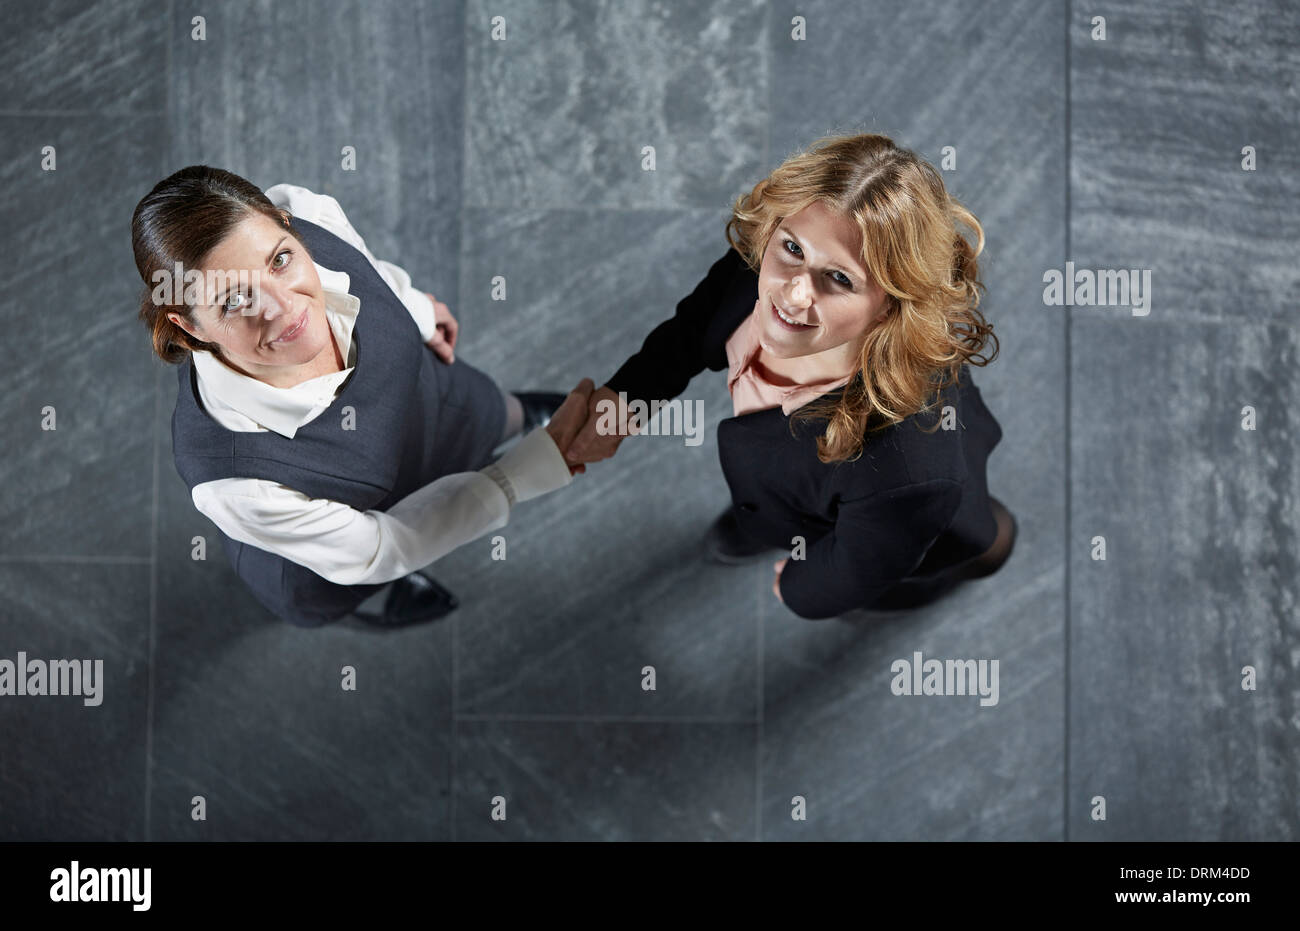 Germany, Neuss, Business women shaking hands, looking up to camera - Stock Image